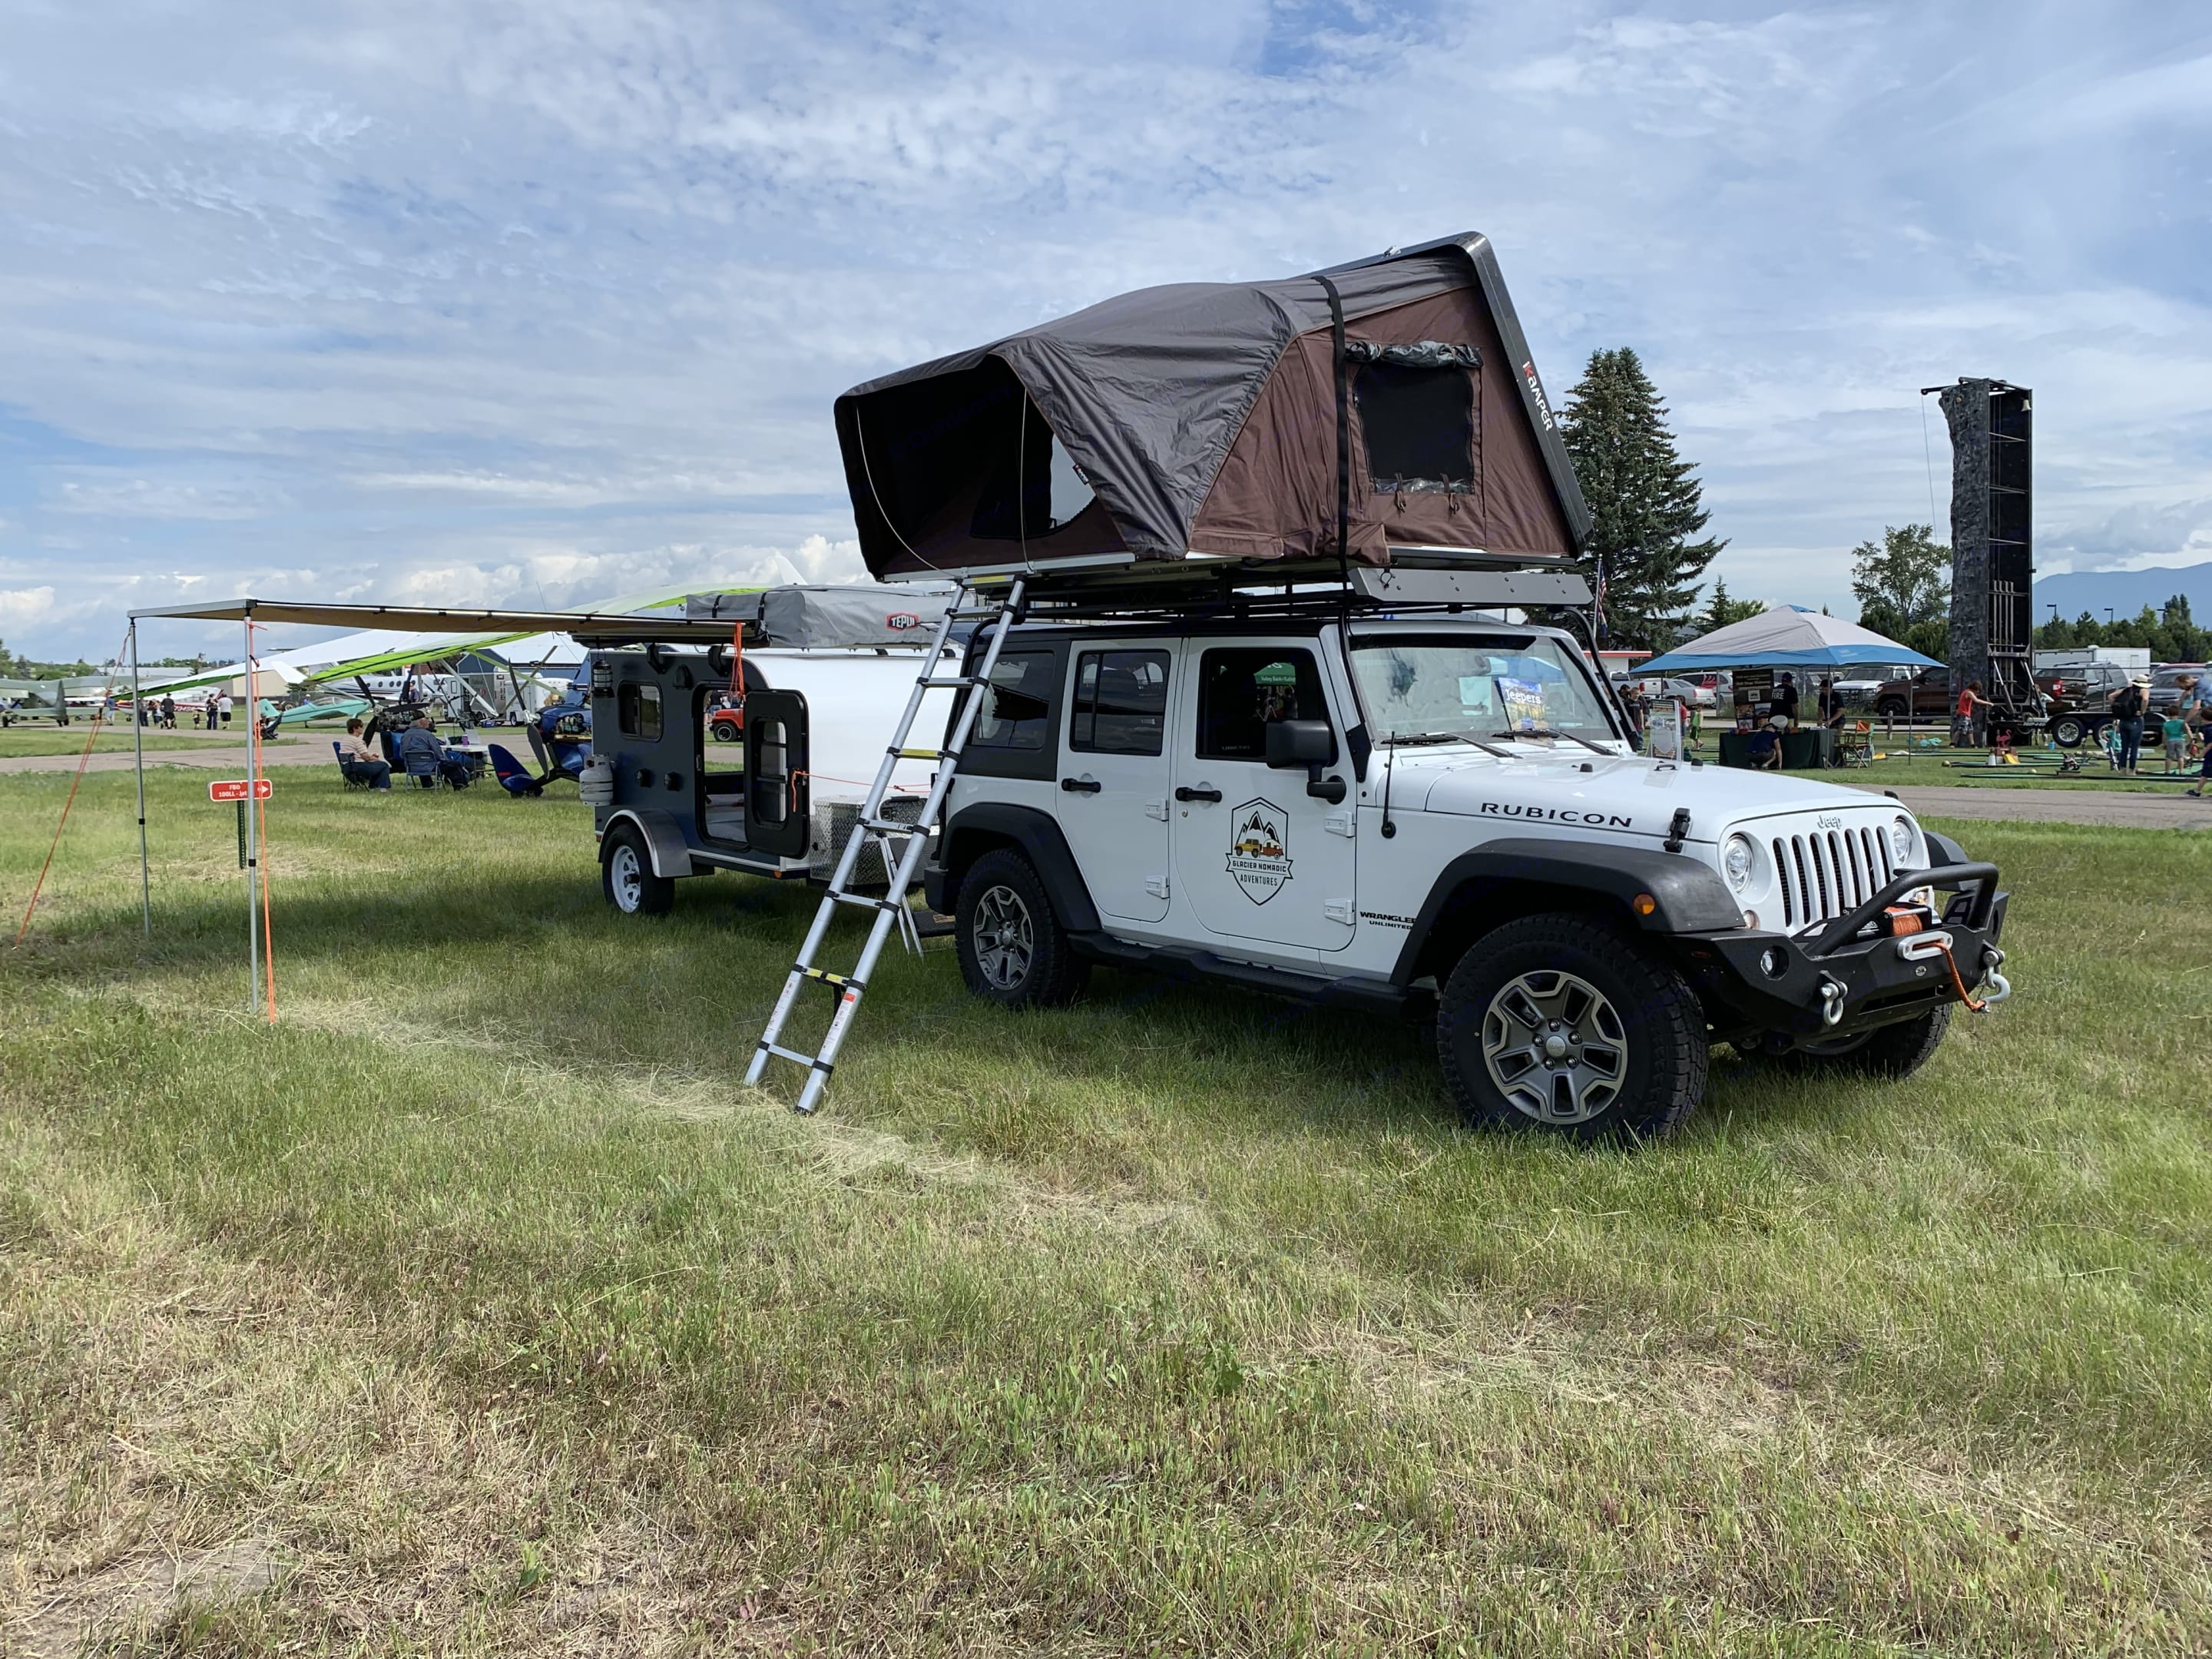 Jeep and Trailer package come fully loaded with all the camping gear needed for your trip.. Jeep Rubicon 2017